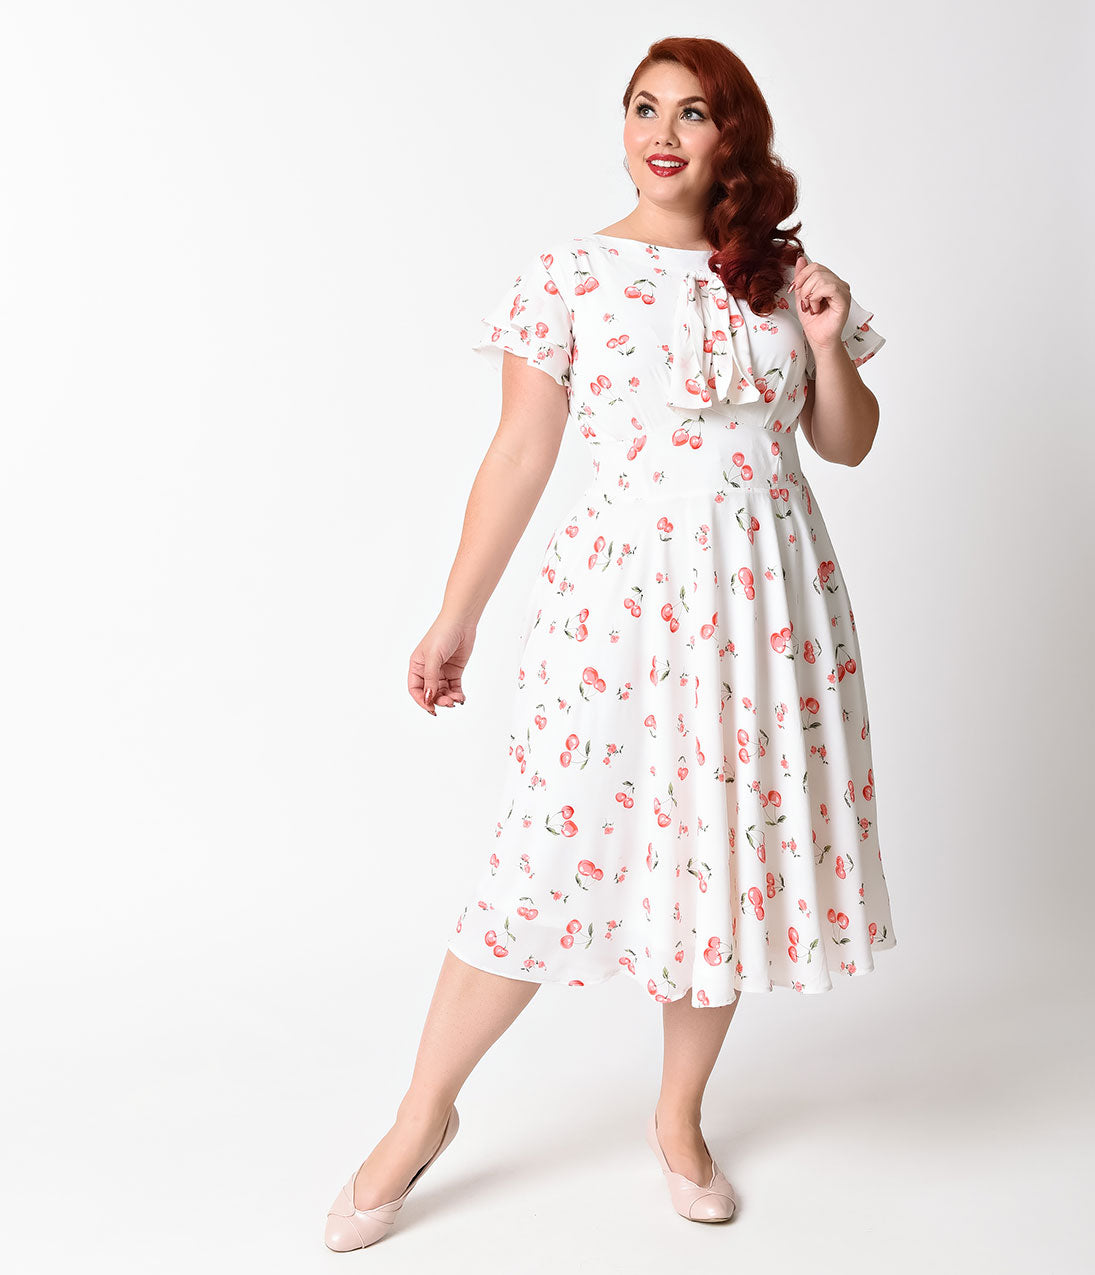 1940s Plus Size Dresses | Swing Dress, Tea Dress Unique Vintage Plus Size 1940s White  Cherry Print Cap Sleeve Dixon Day Dress $62.00 AT vintagedancer.com